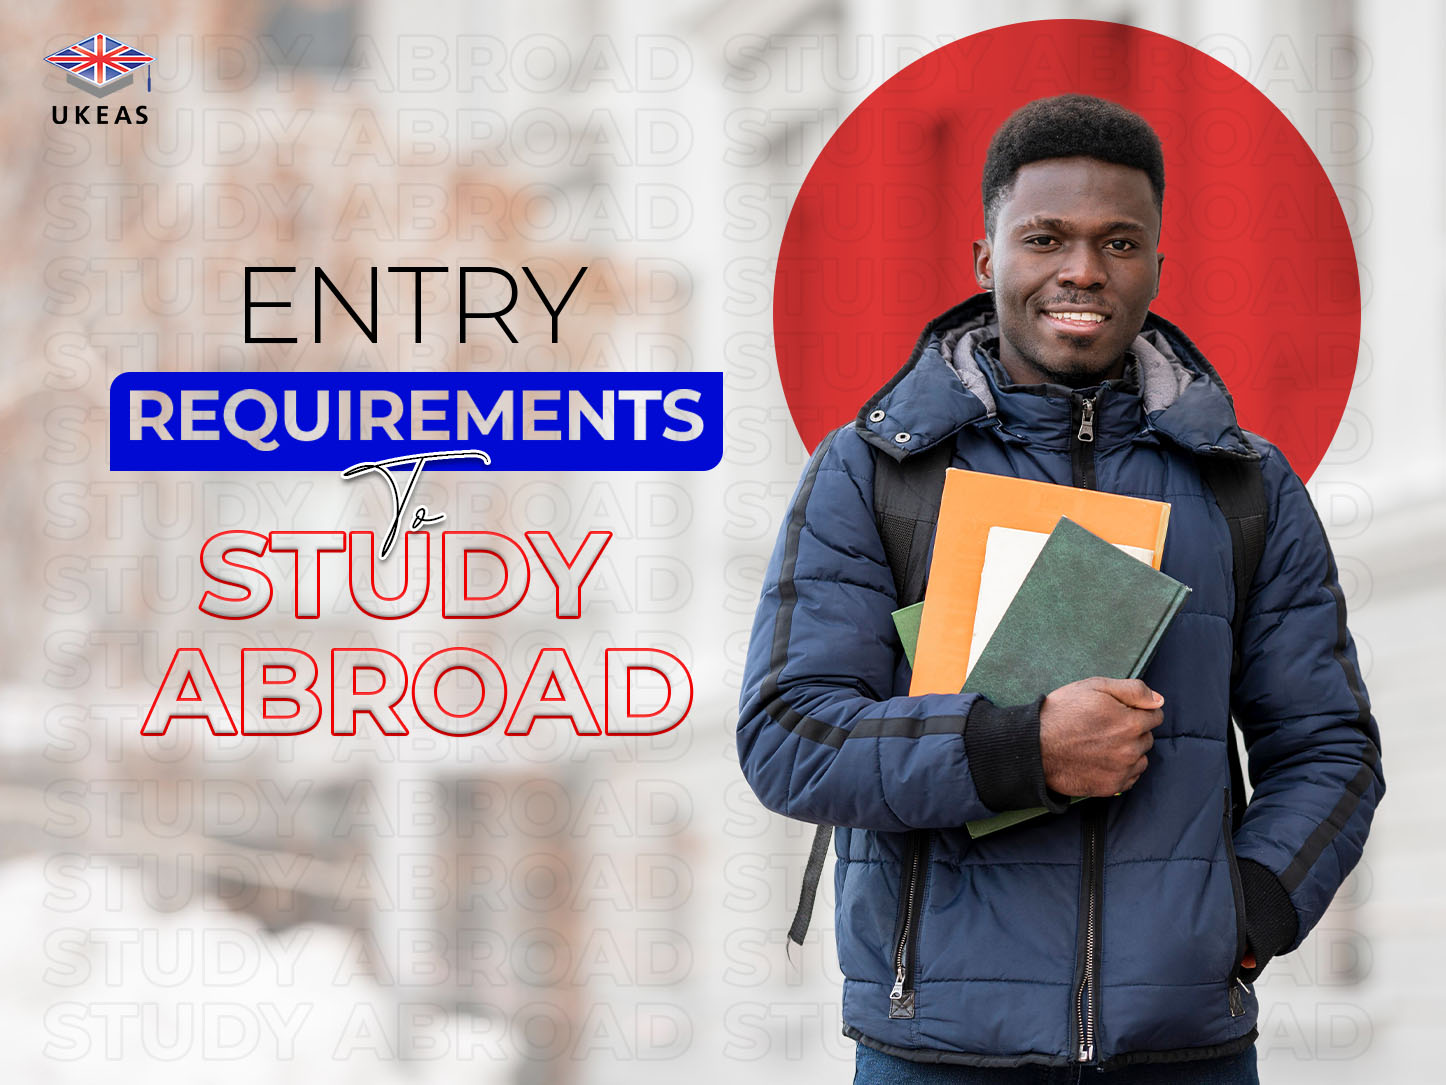 Entry Requirements to study abroad